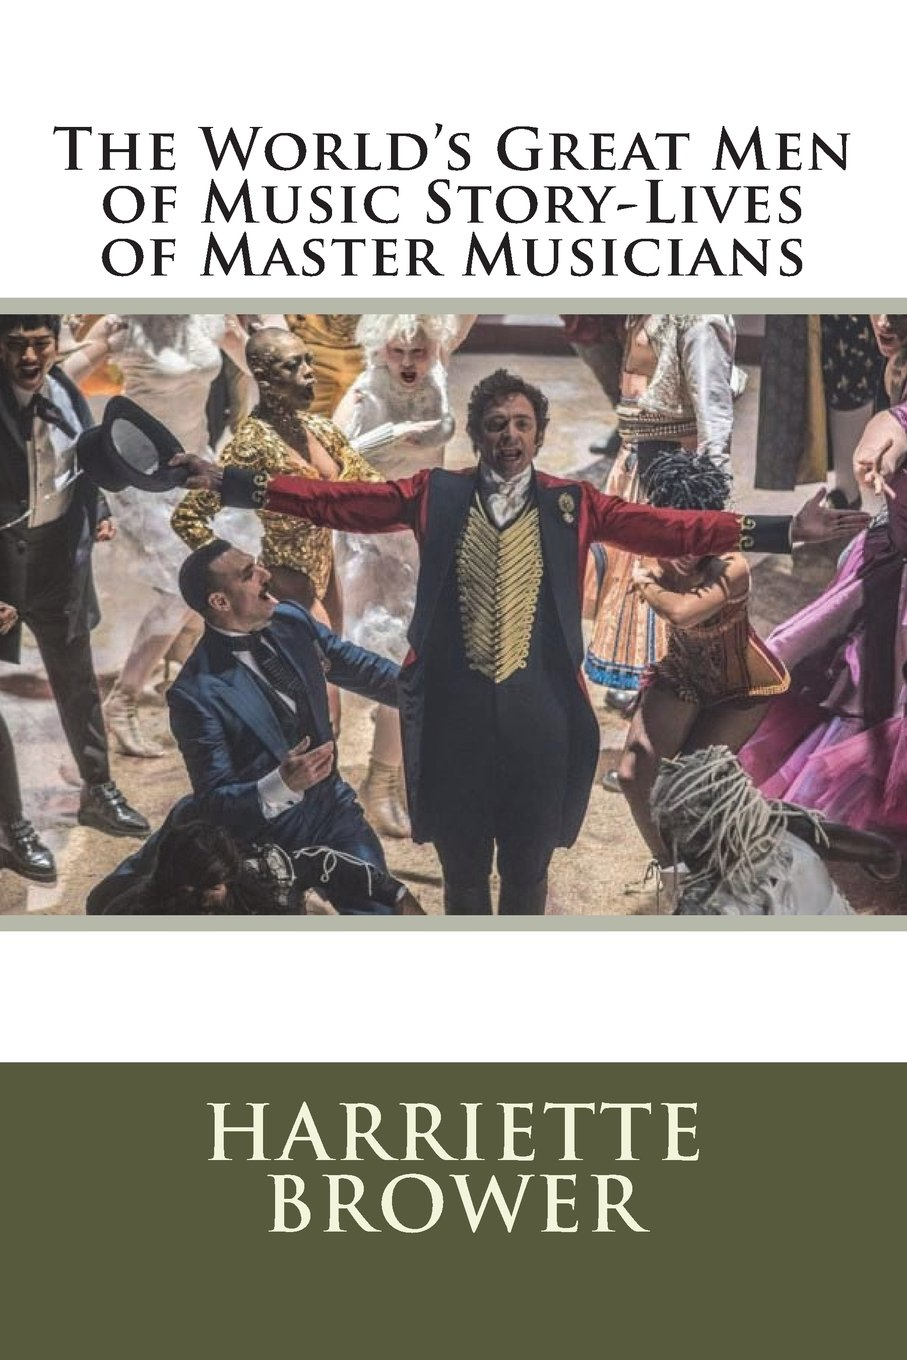 Download The World's Great Men of Music Story-Lives of Master Musicians PDF